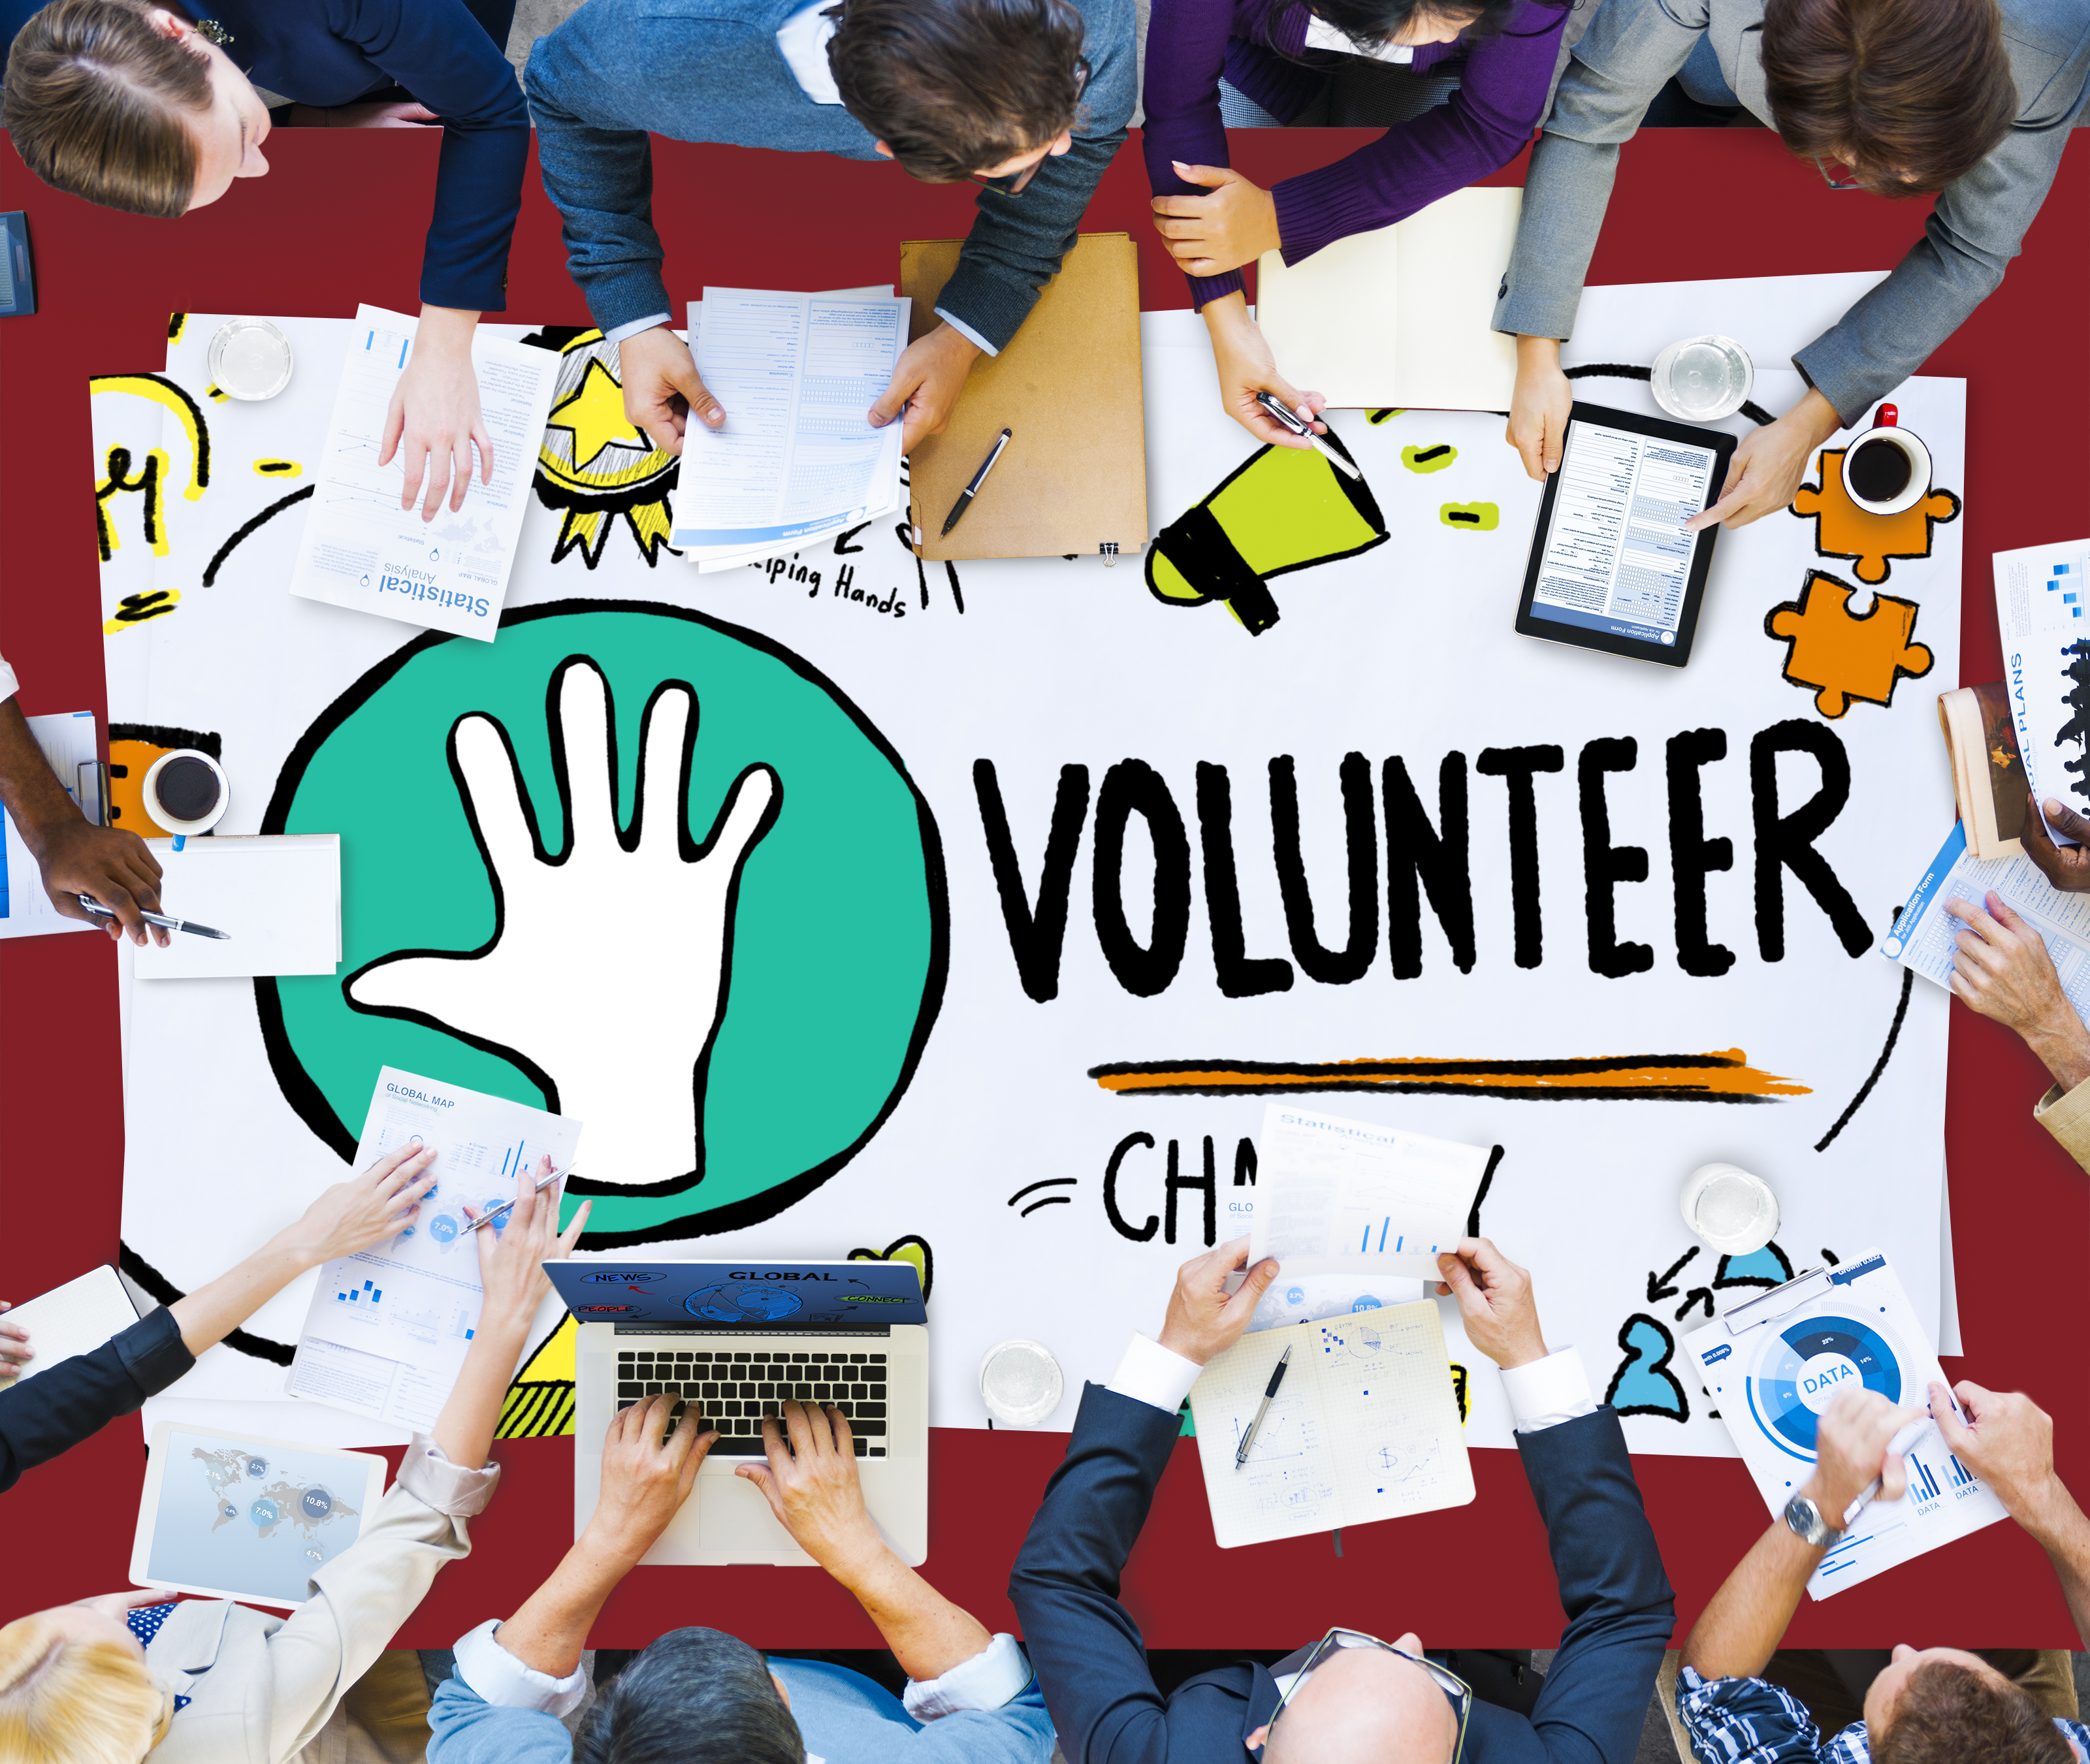 Making it easy for people to volunteer: planning is key